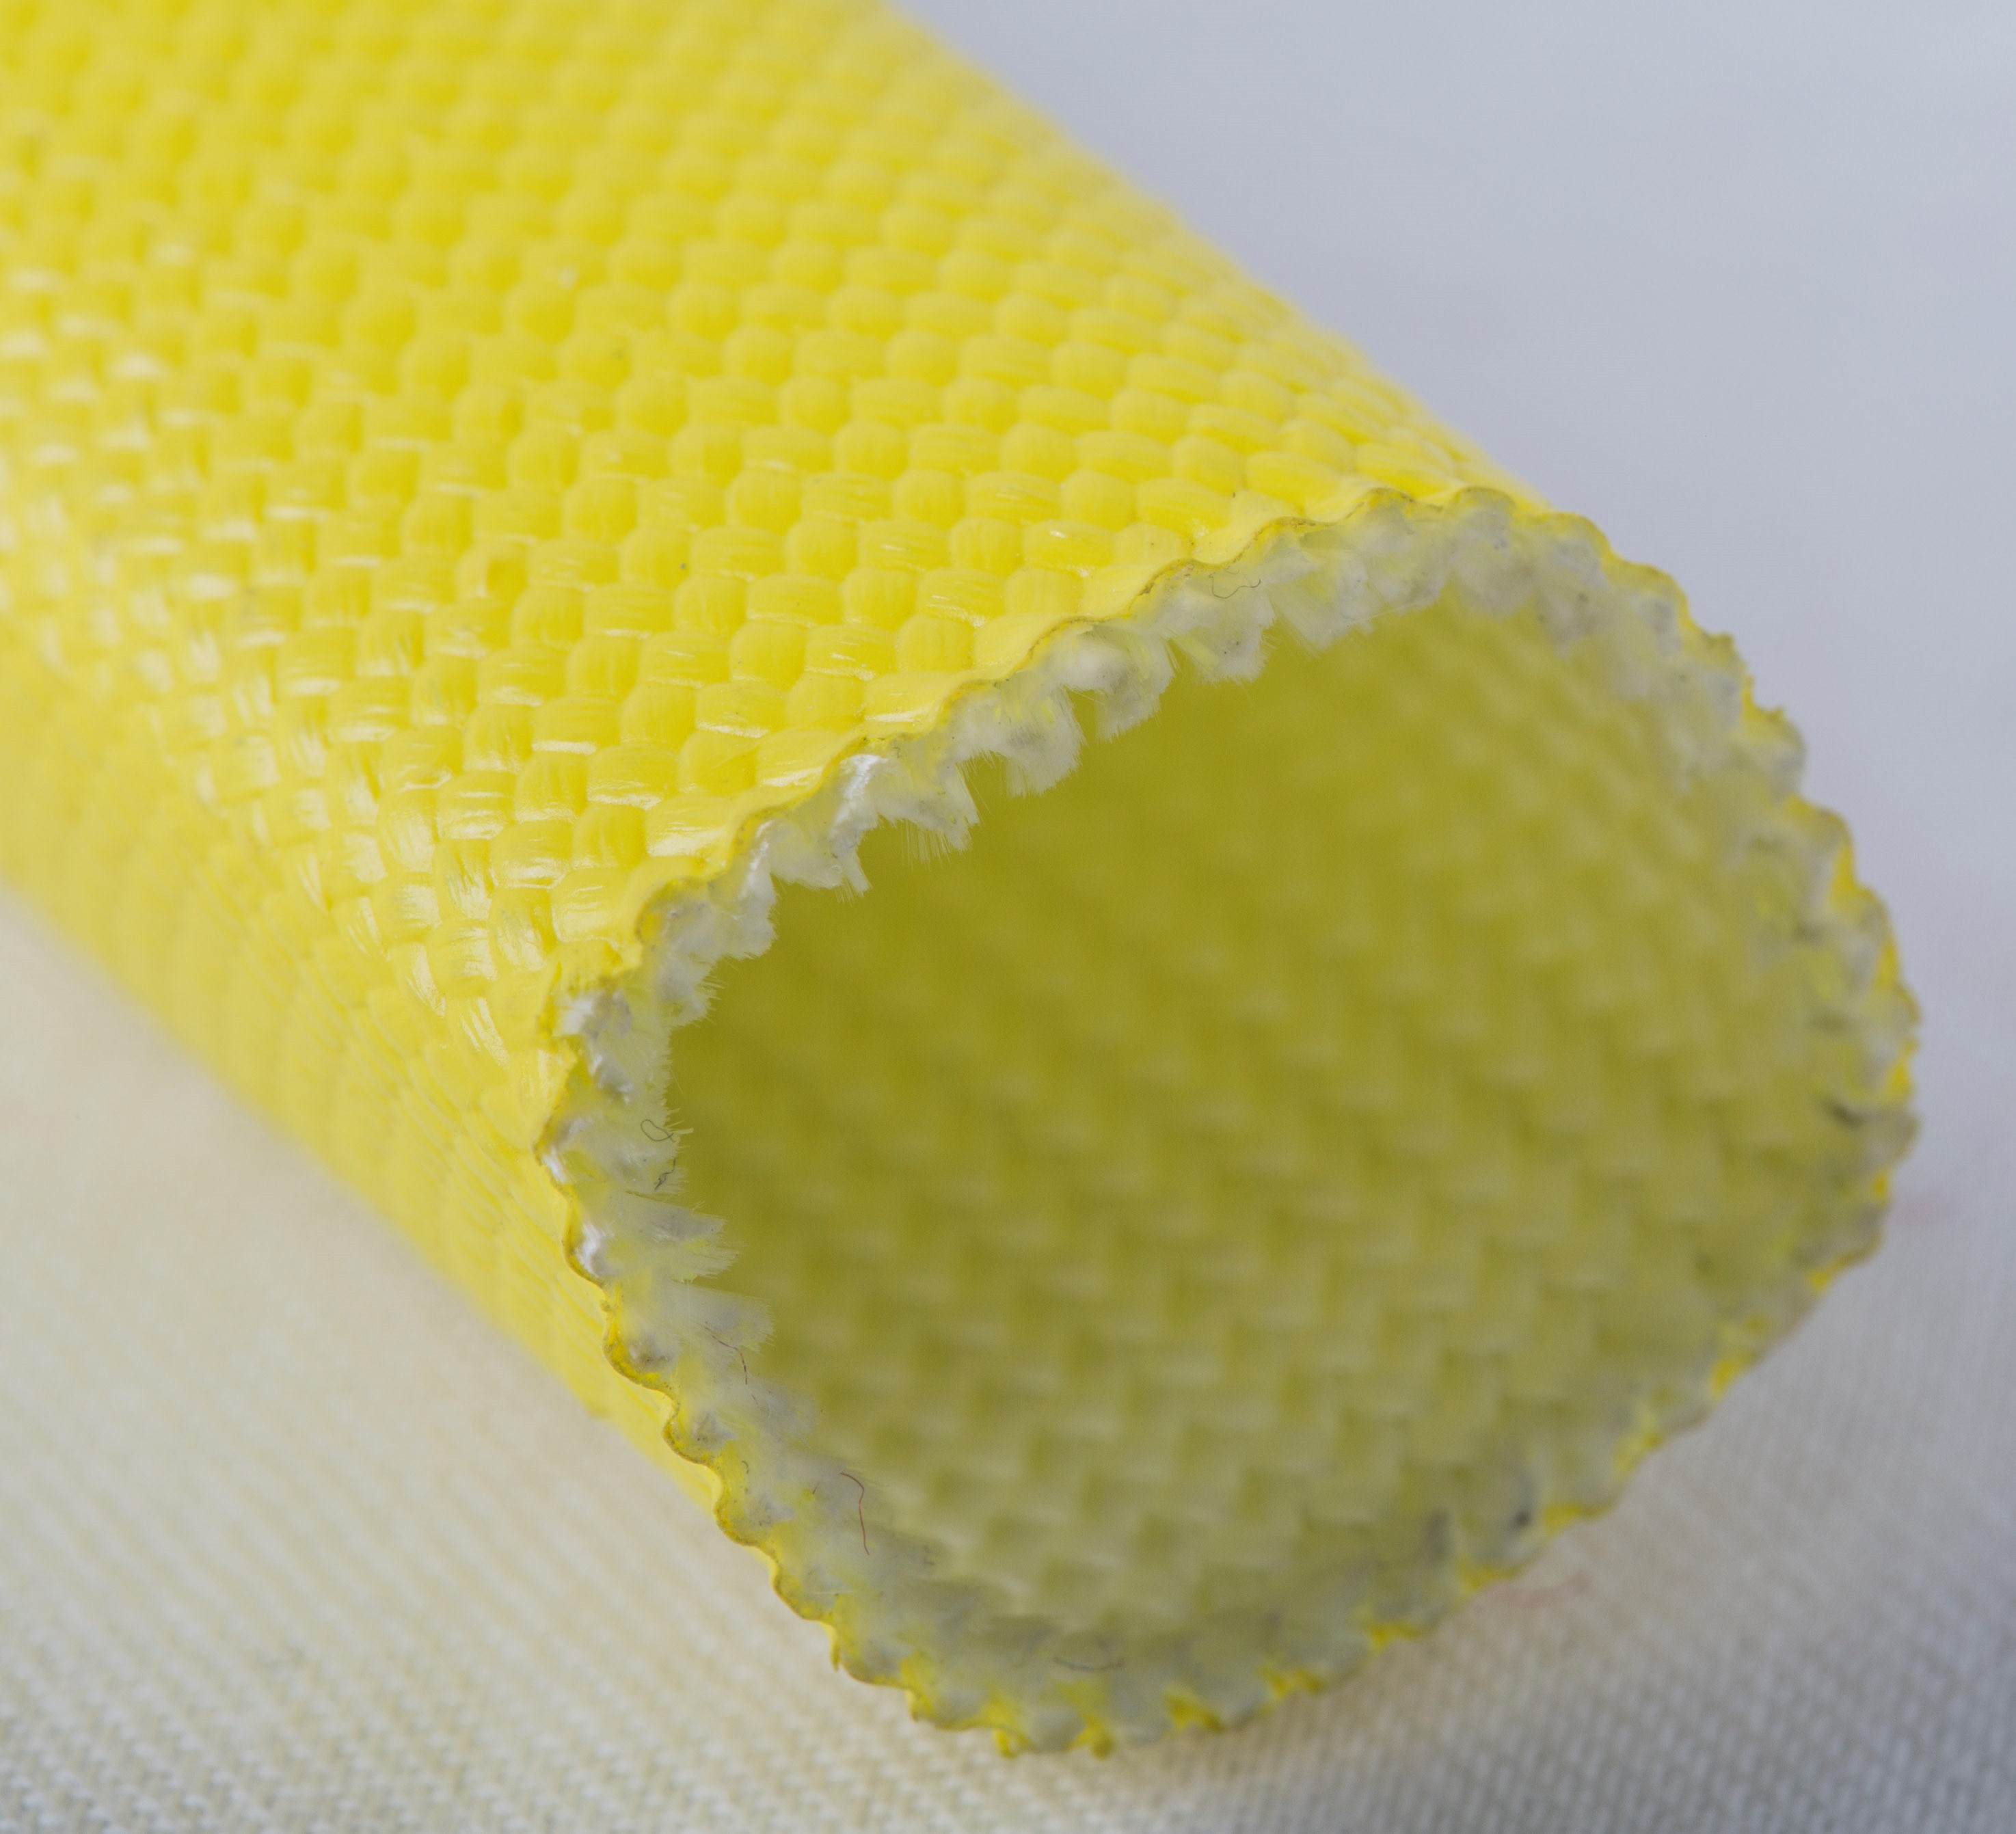 Acrylic glass sleeving